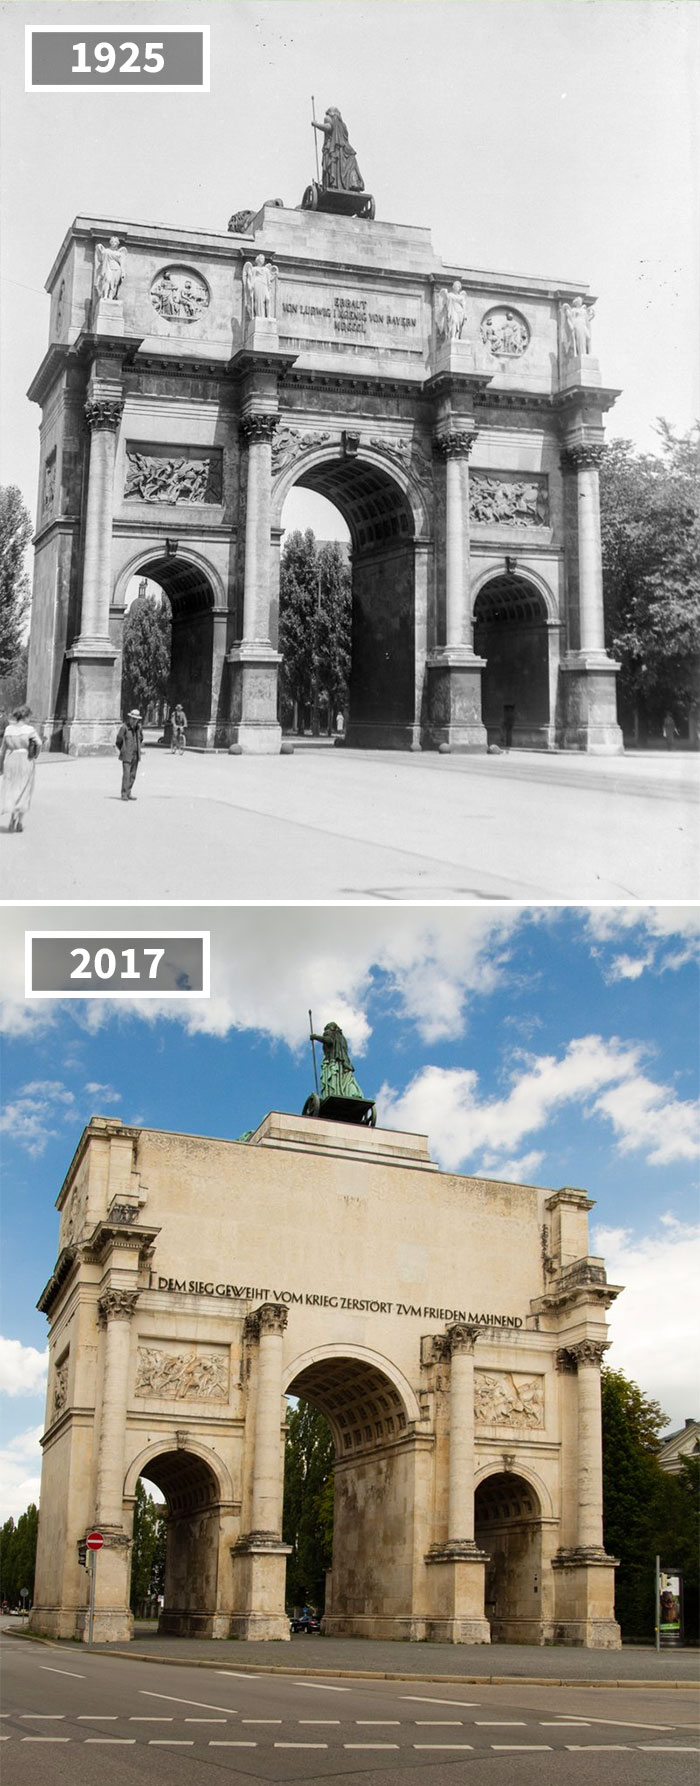 Victory Gate, Munich, Germany, 1925 - 2017